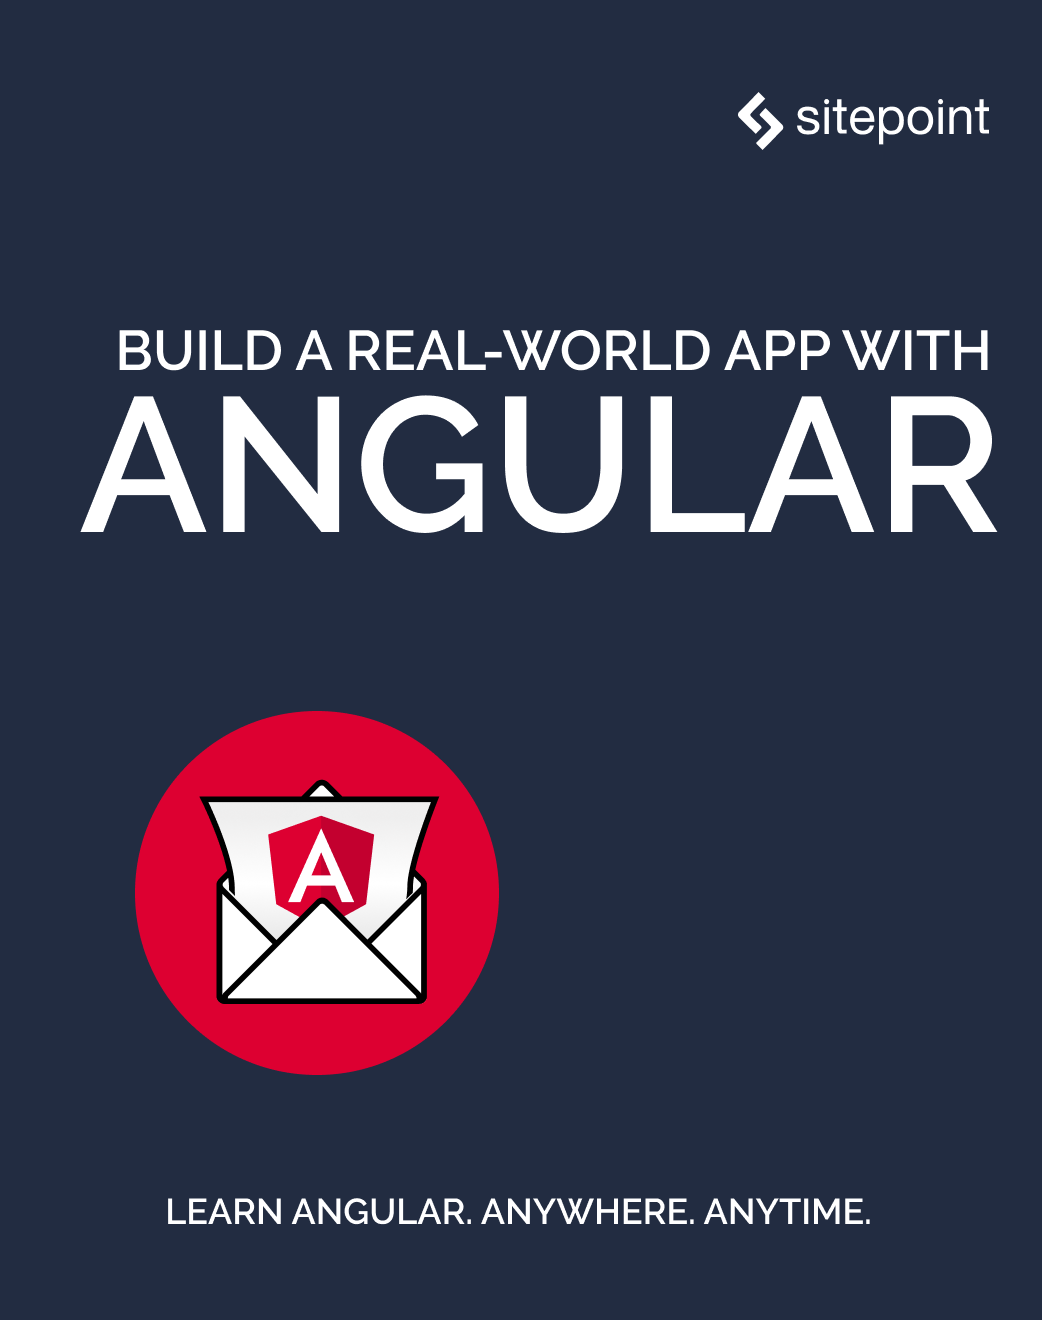 Build a Real-world App with Angular